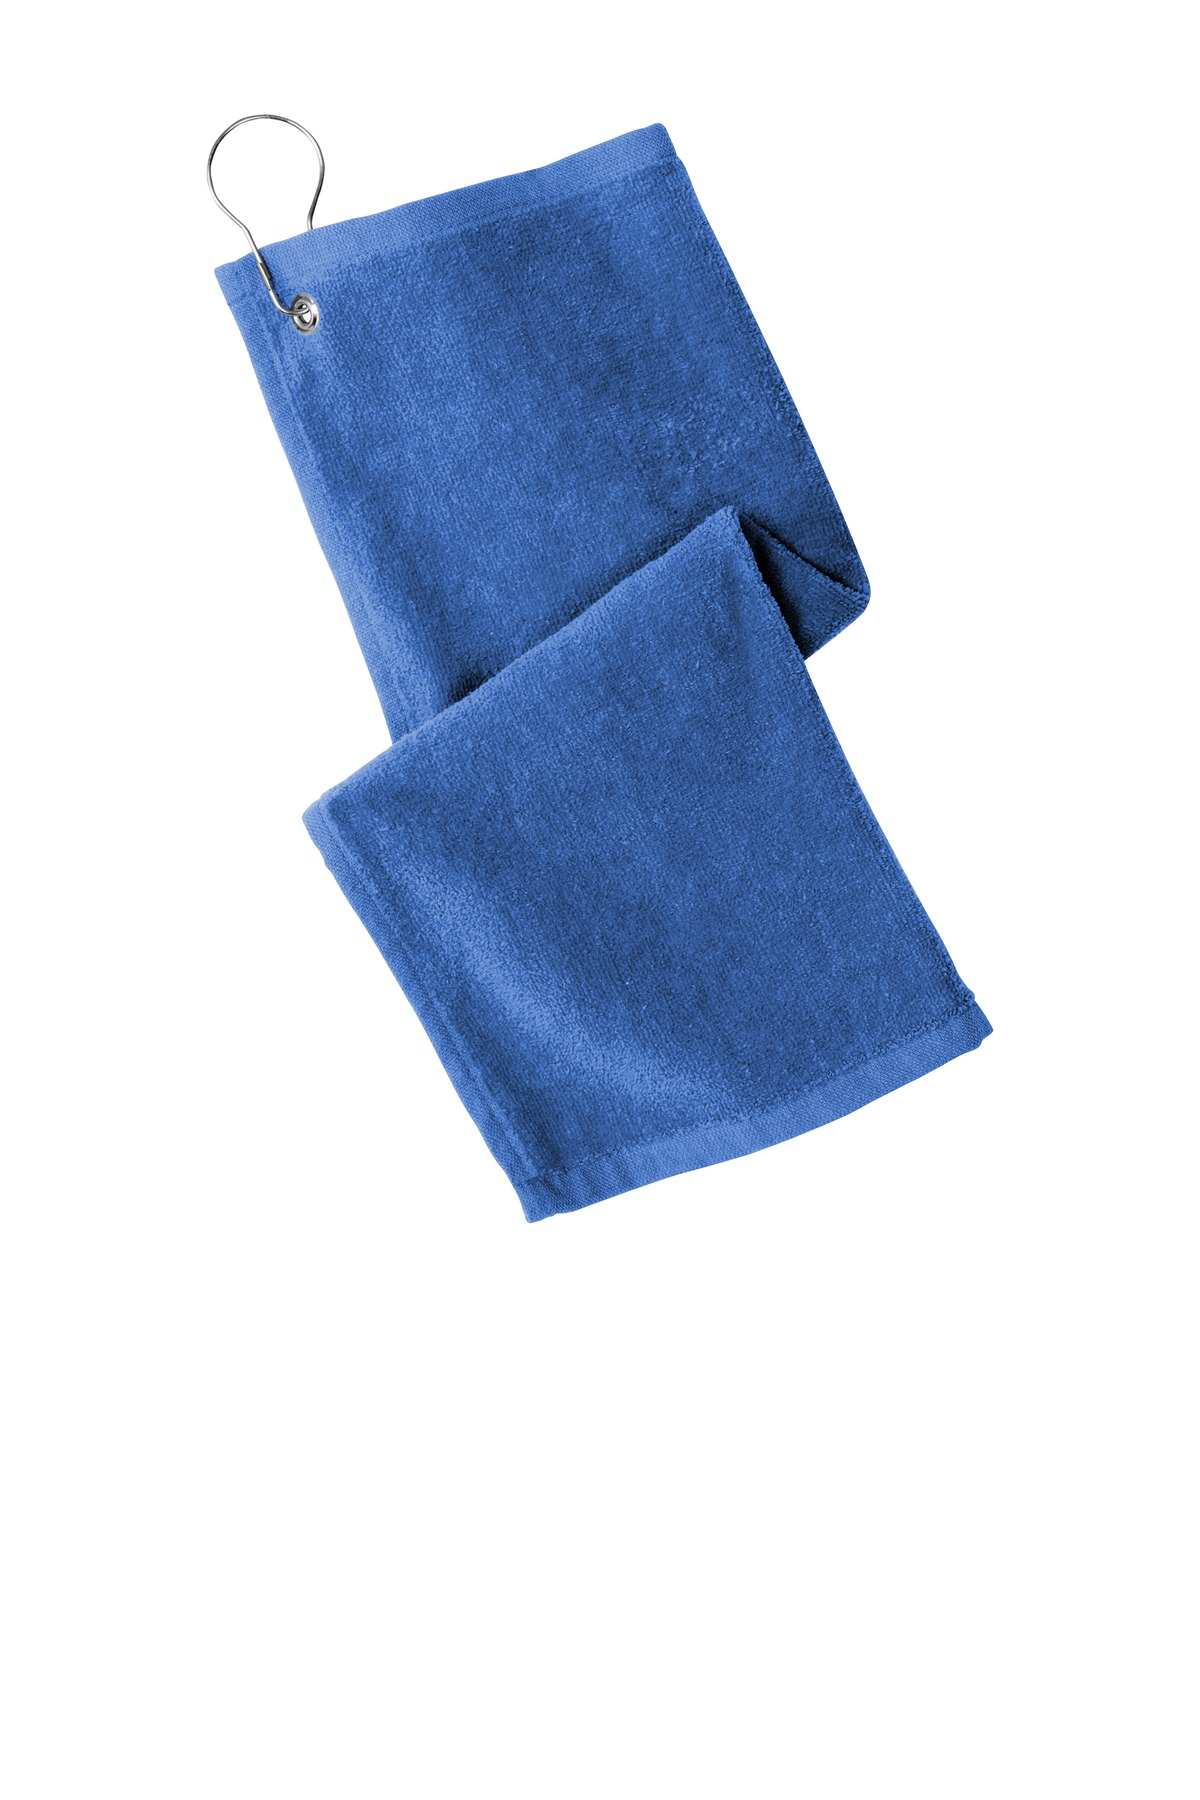 Port Authority  ®  Grommeted Hemmed Towel PT400 - Royal